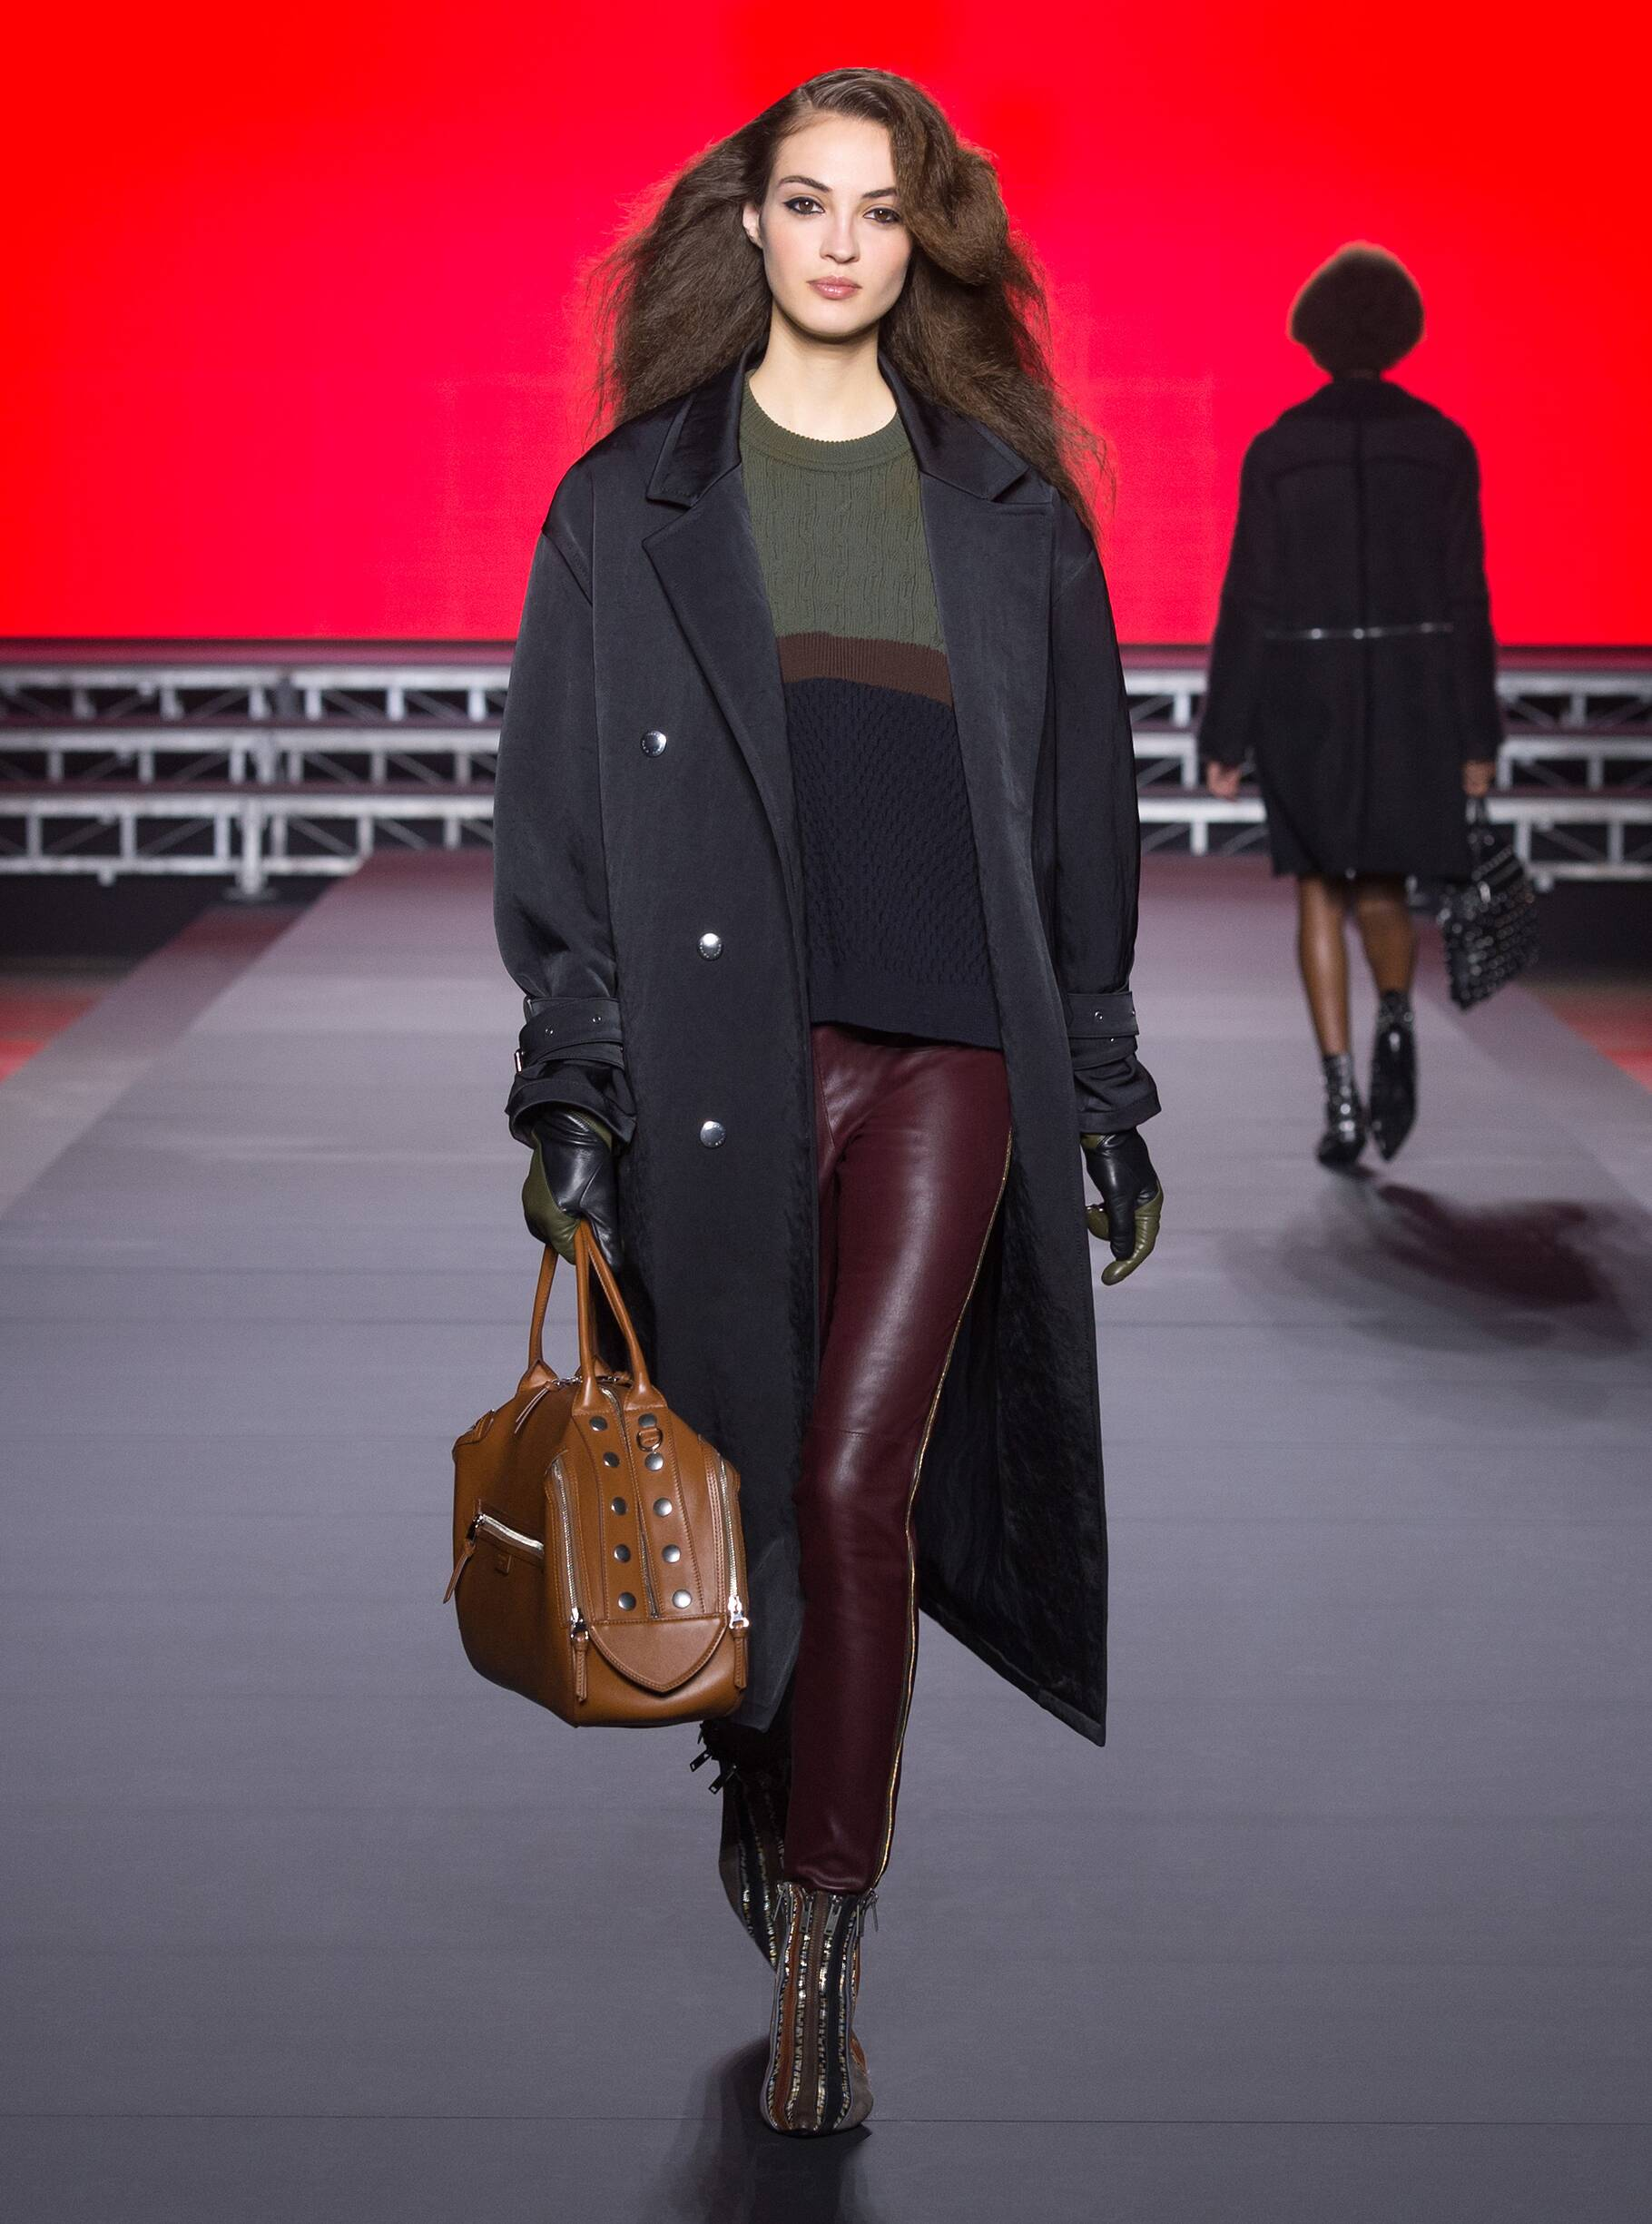 a91b9175ada Sonia Rykiel Fall Winter 2018 Womens Collection Paris Fashion Week